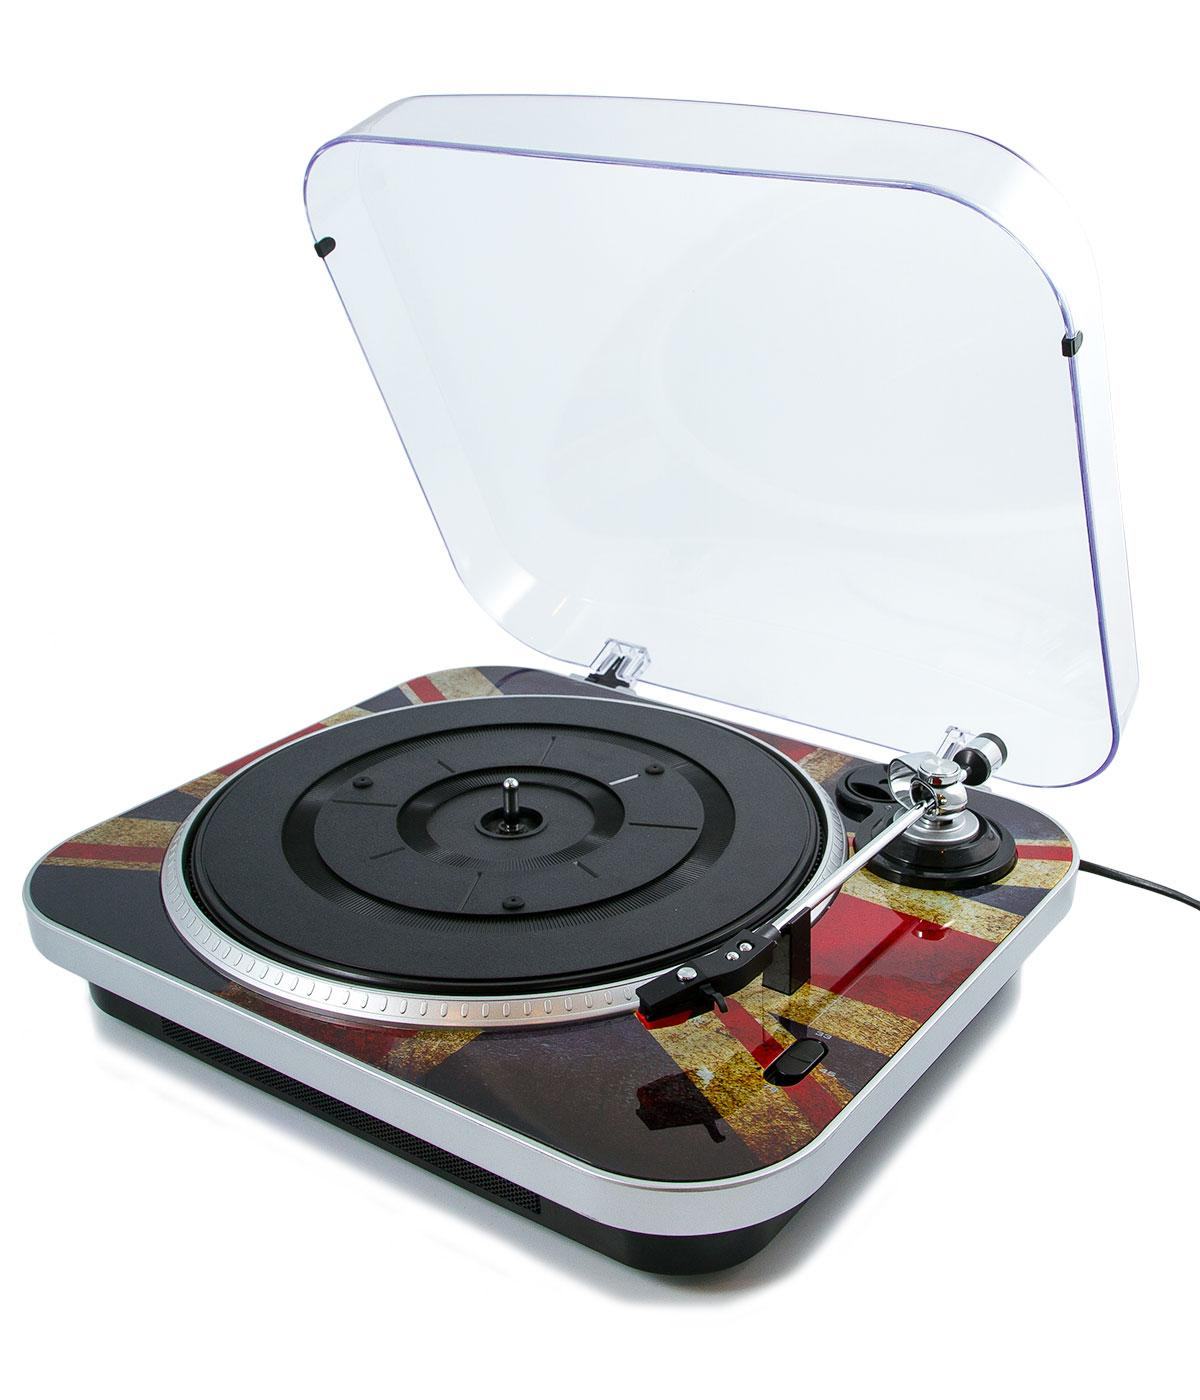 GPO RETRO 1960s Mod Jam Union Jack Record Player